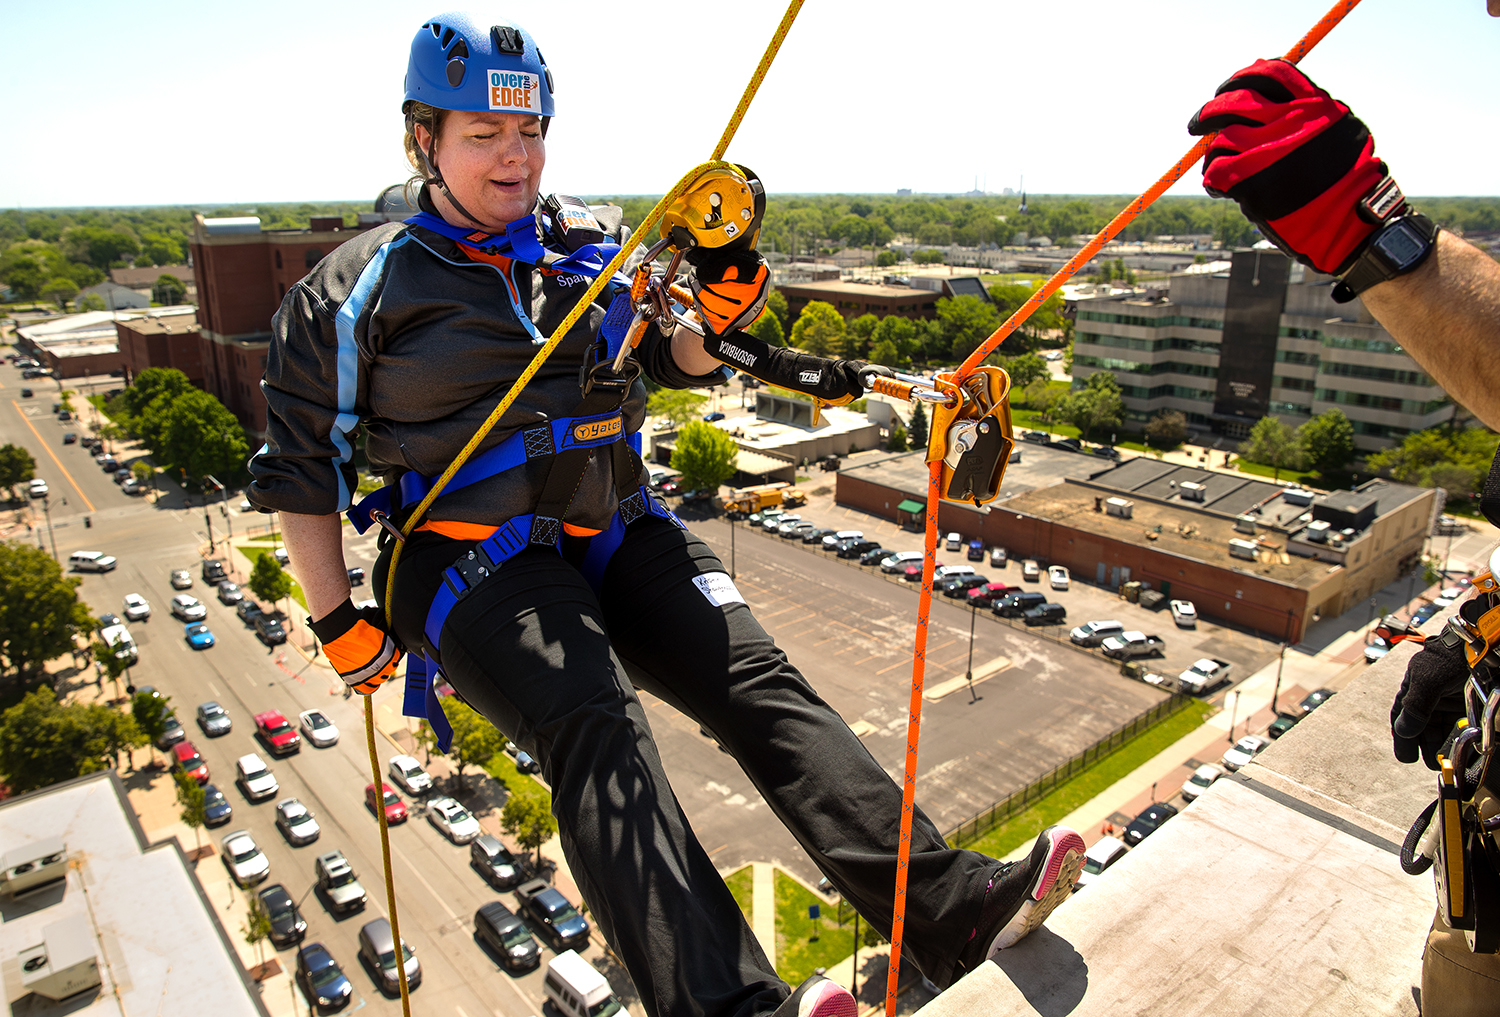 Kristin Shaughnessy of Springfield takes a breath as she prepares to step over the edge and rappel 130 feet down the east face of the President Abraham Lincoln DoubleTree Hotel May 13. The event was a fundraiser for Sparc, a nonprofit organization for people with intellectual and developmental disabilities. Ted Schurter/The State Journal-Register